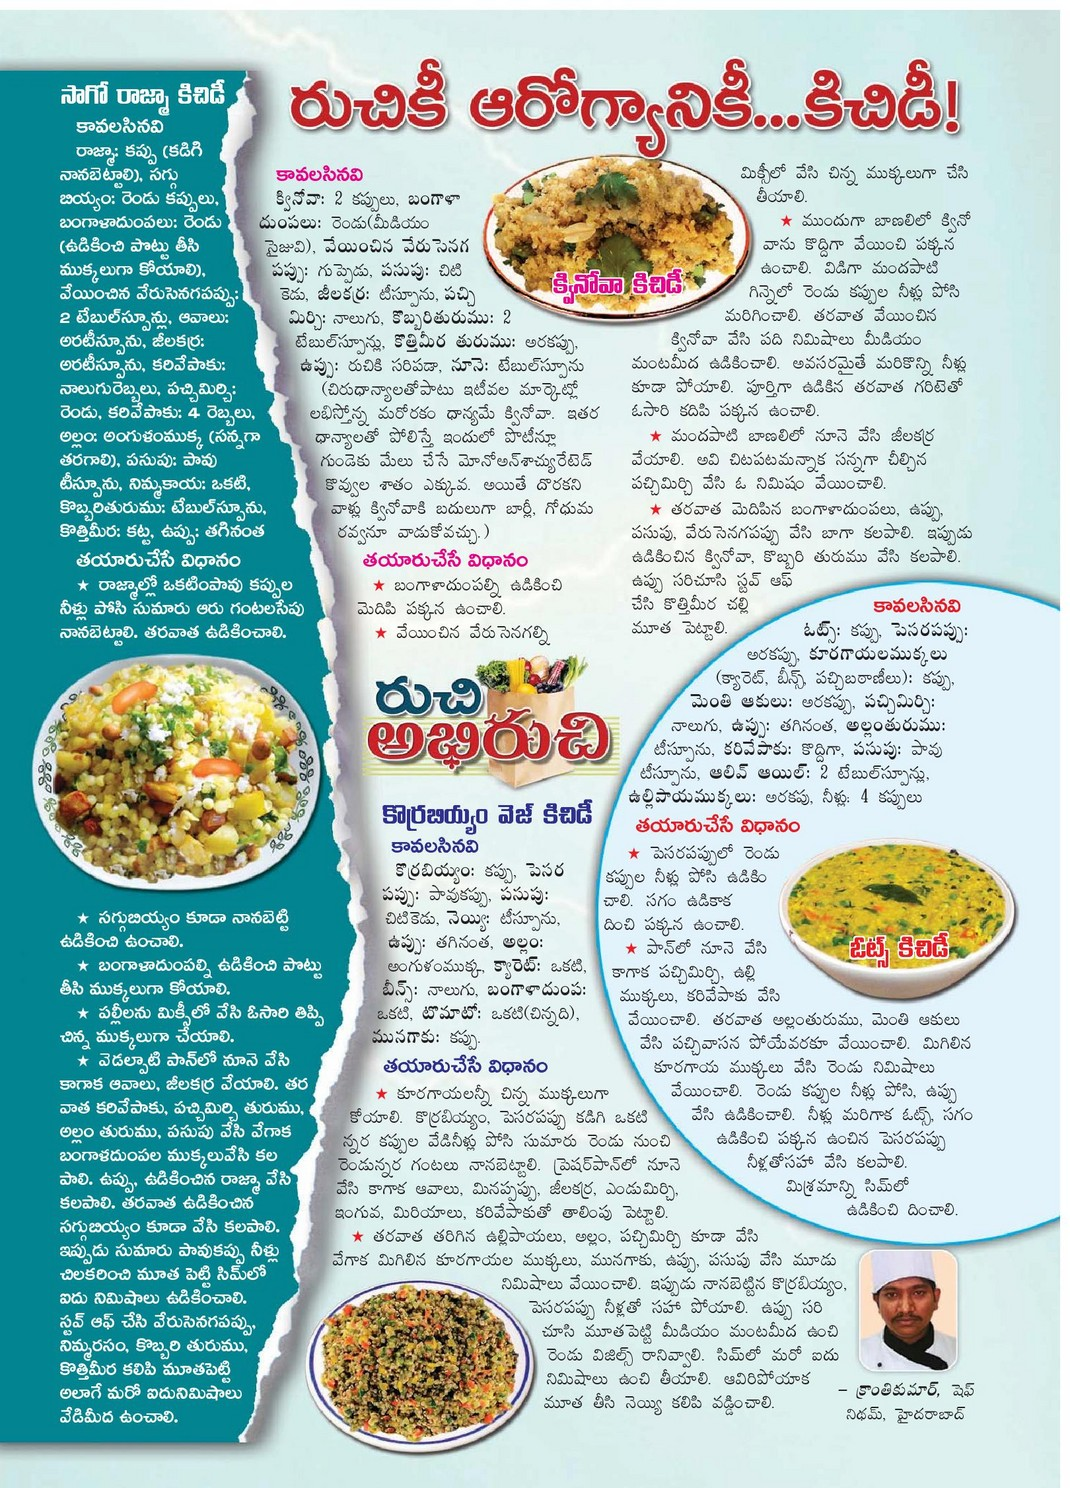 Telugu Recipes: AndhraRecipes MakingTips_KitchenTips_ RecipesTips ...